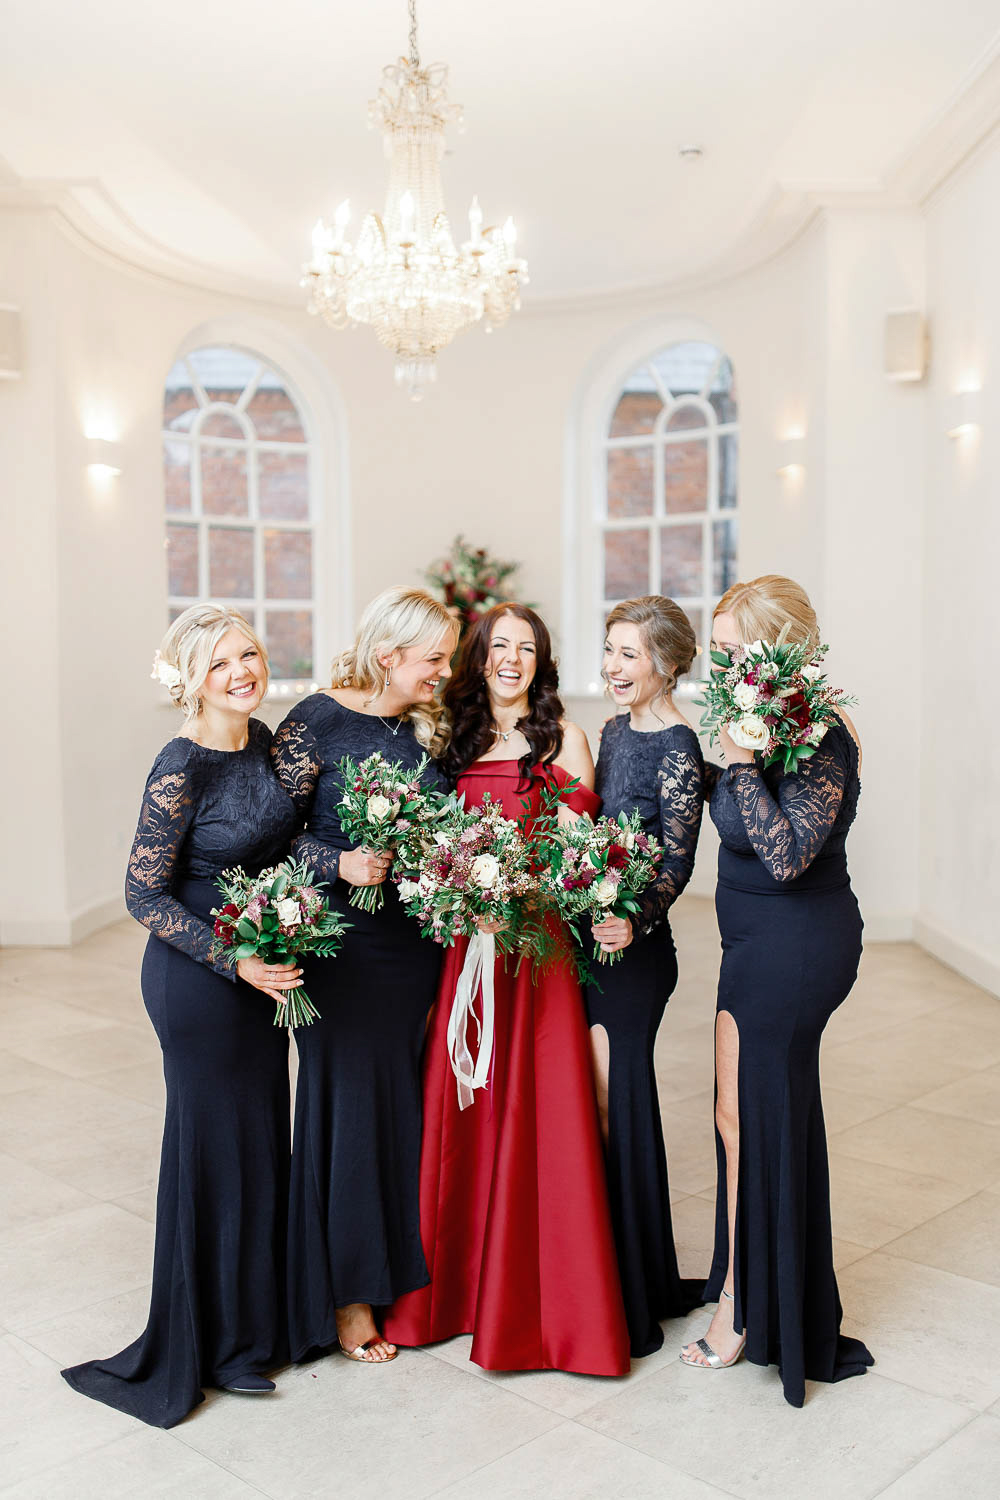 The bridesmaids were wearing navy maxi dresses with lace bodices and sleeves and side slits